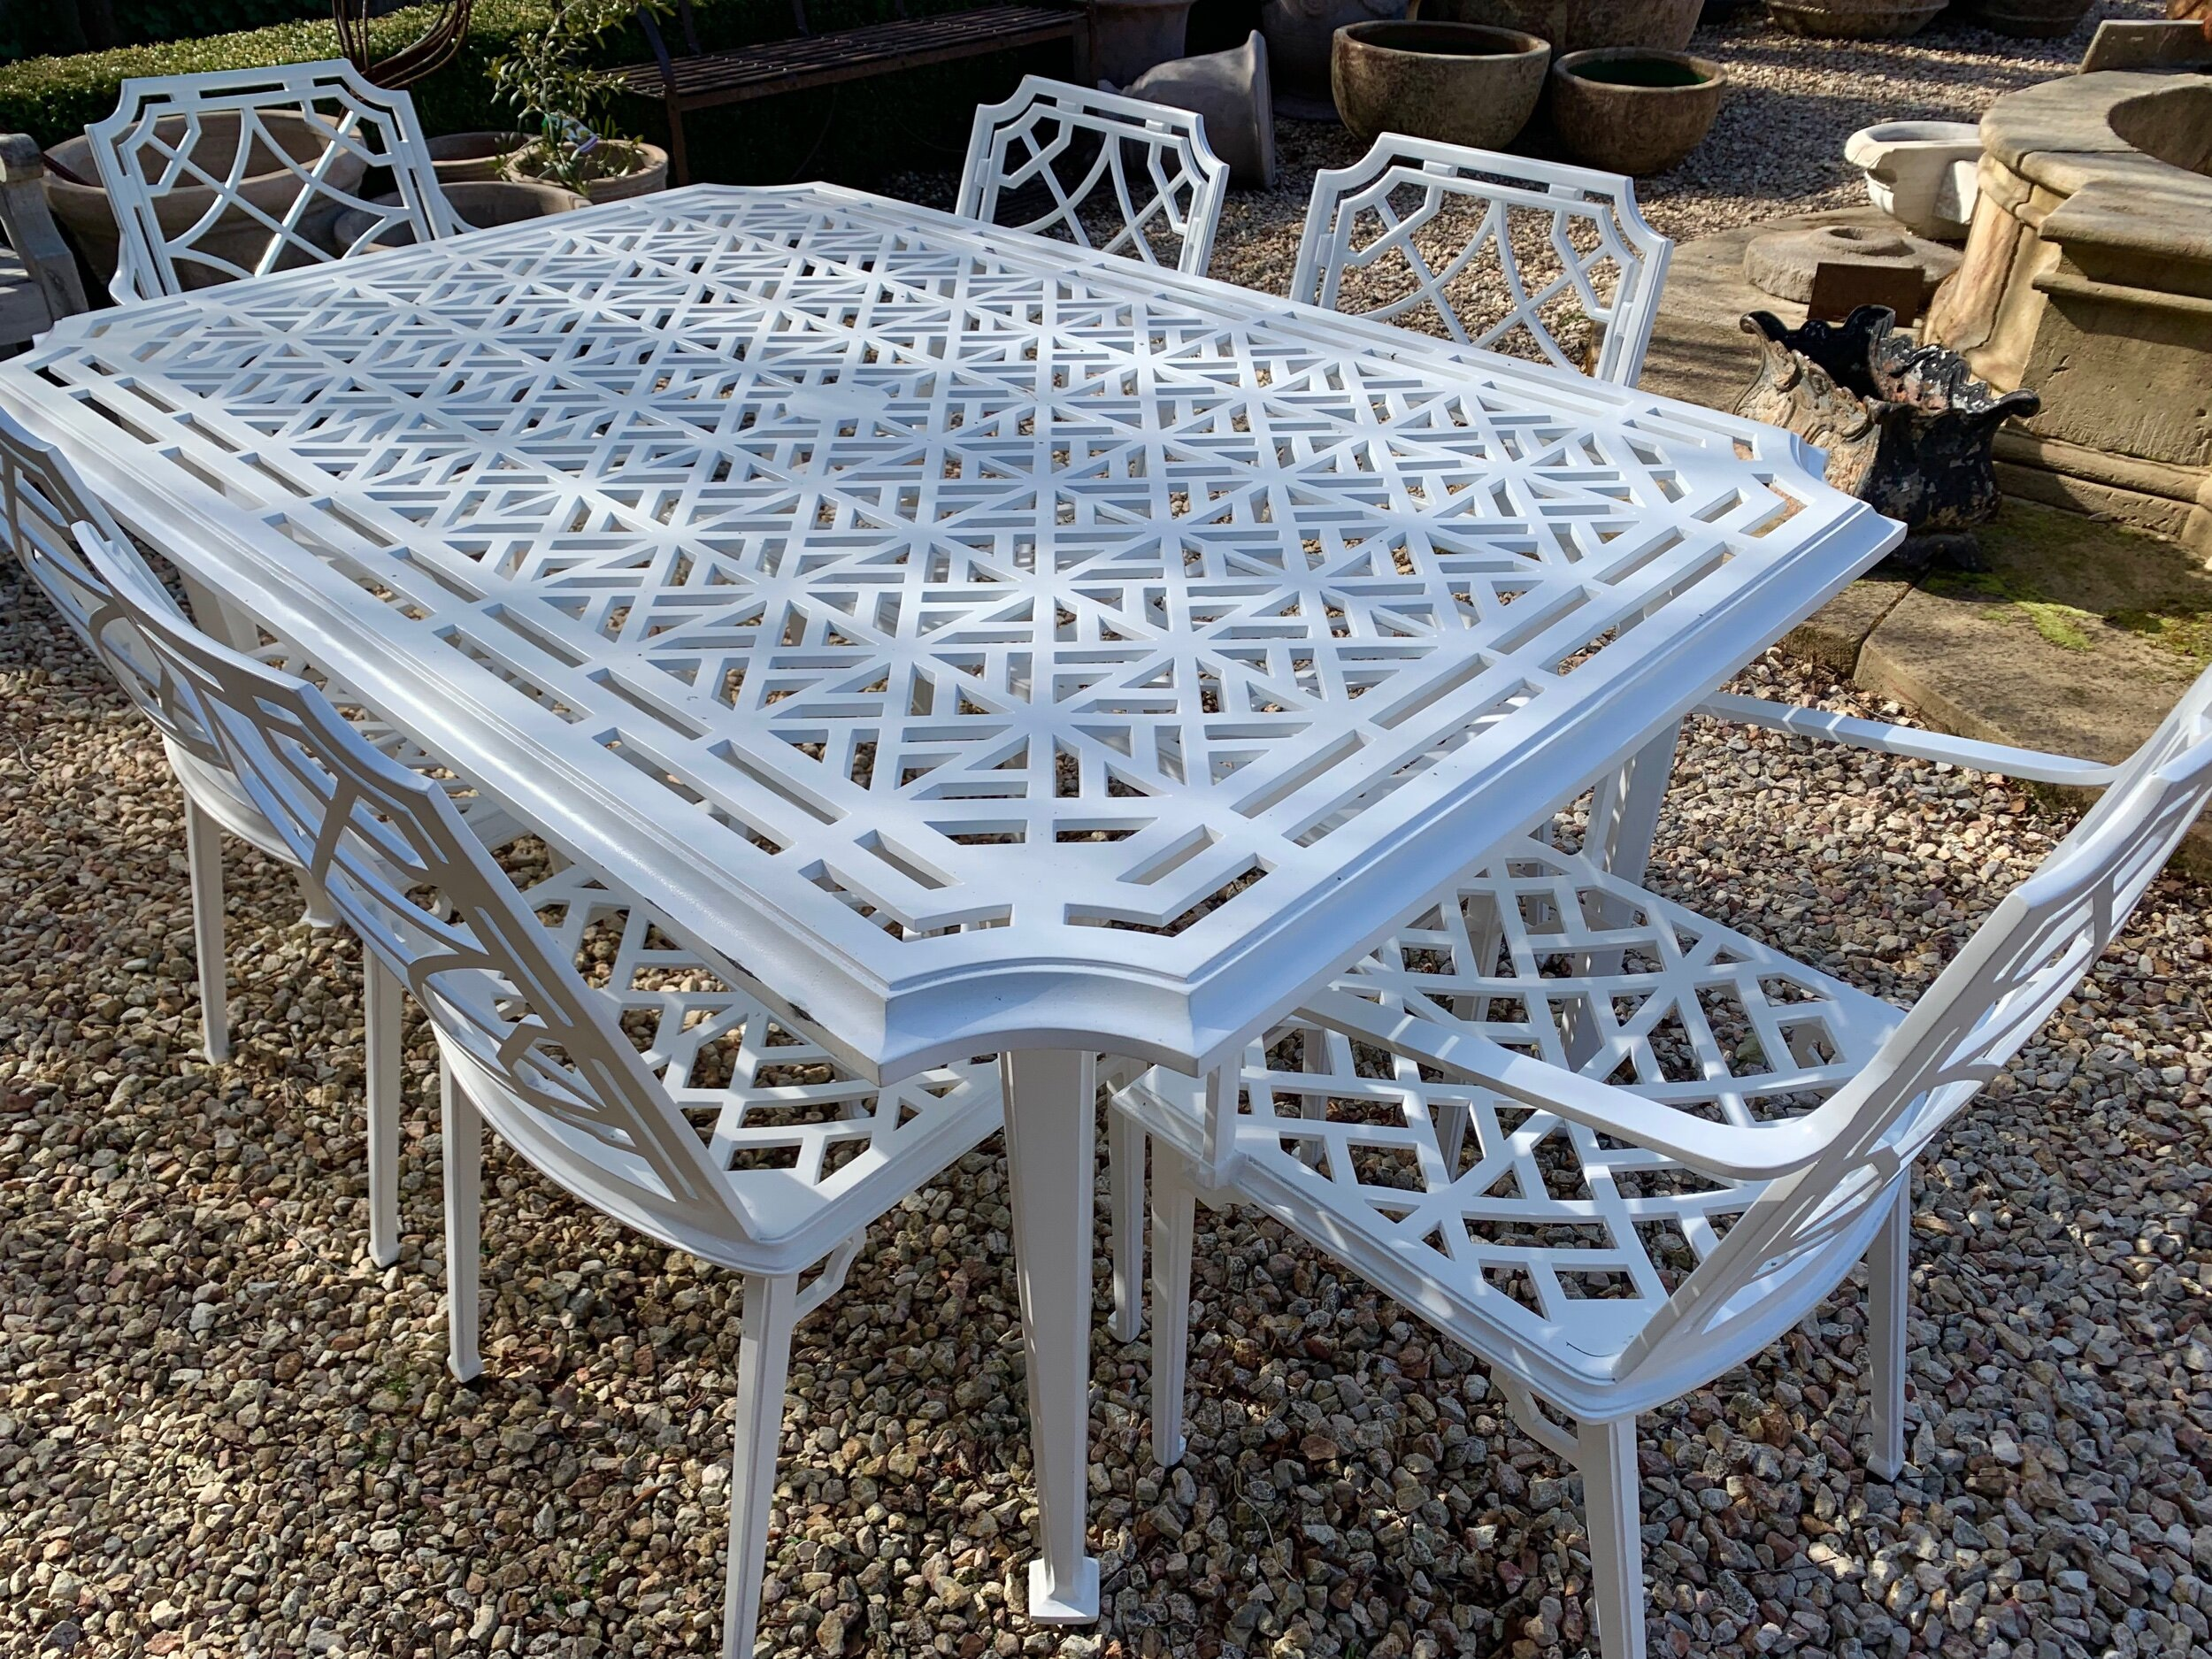 TC213-215 Repton cast aluminium 6 seat table and chair setting $5800set